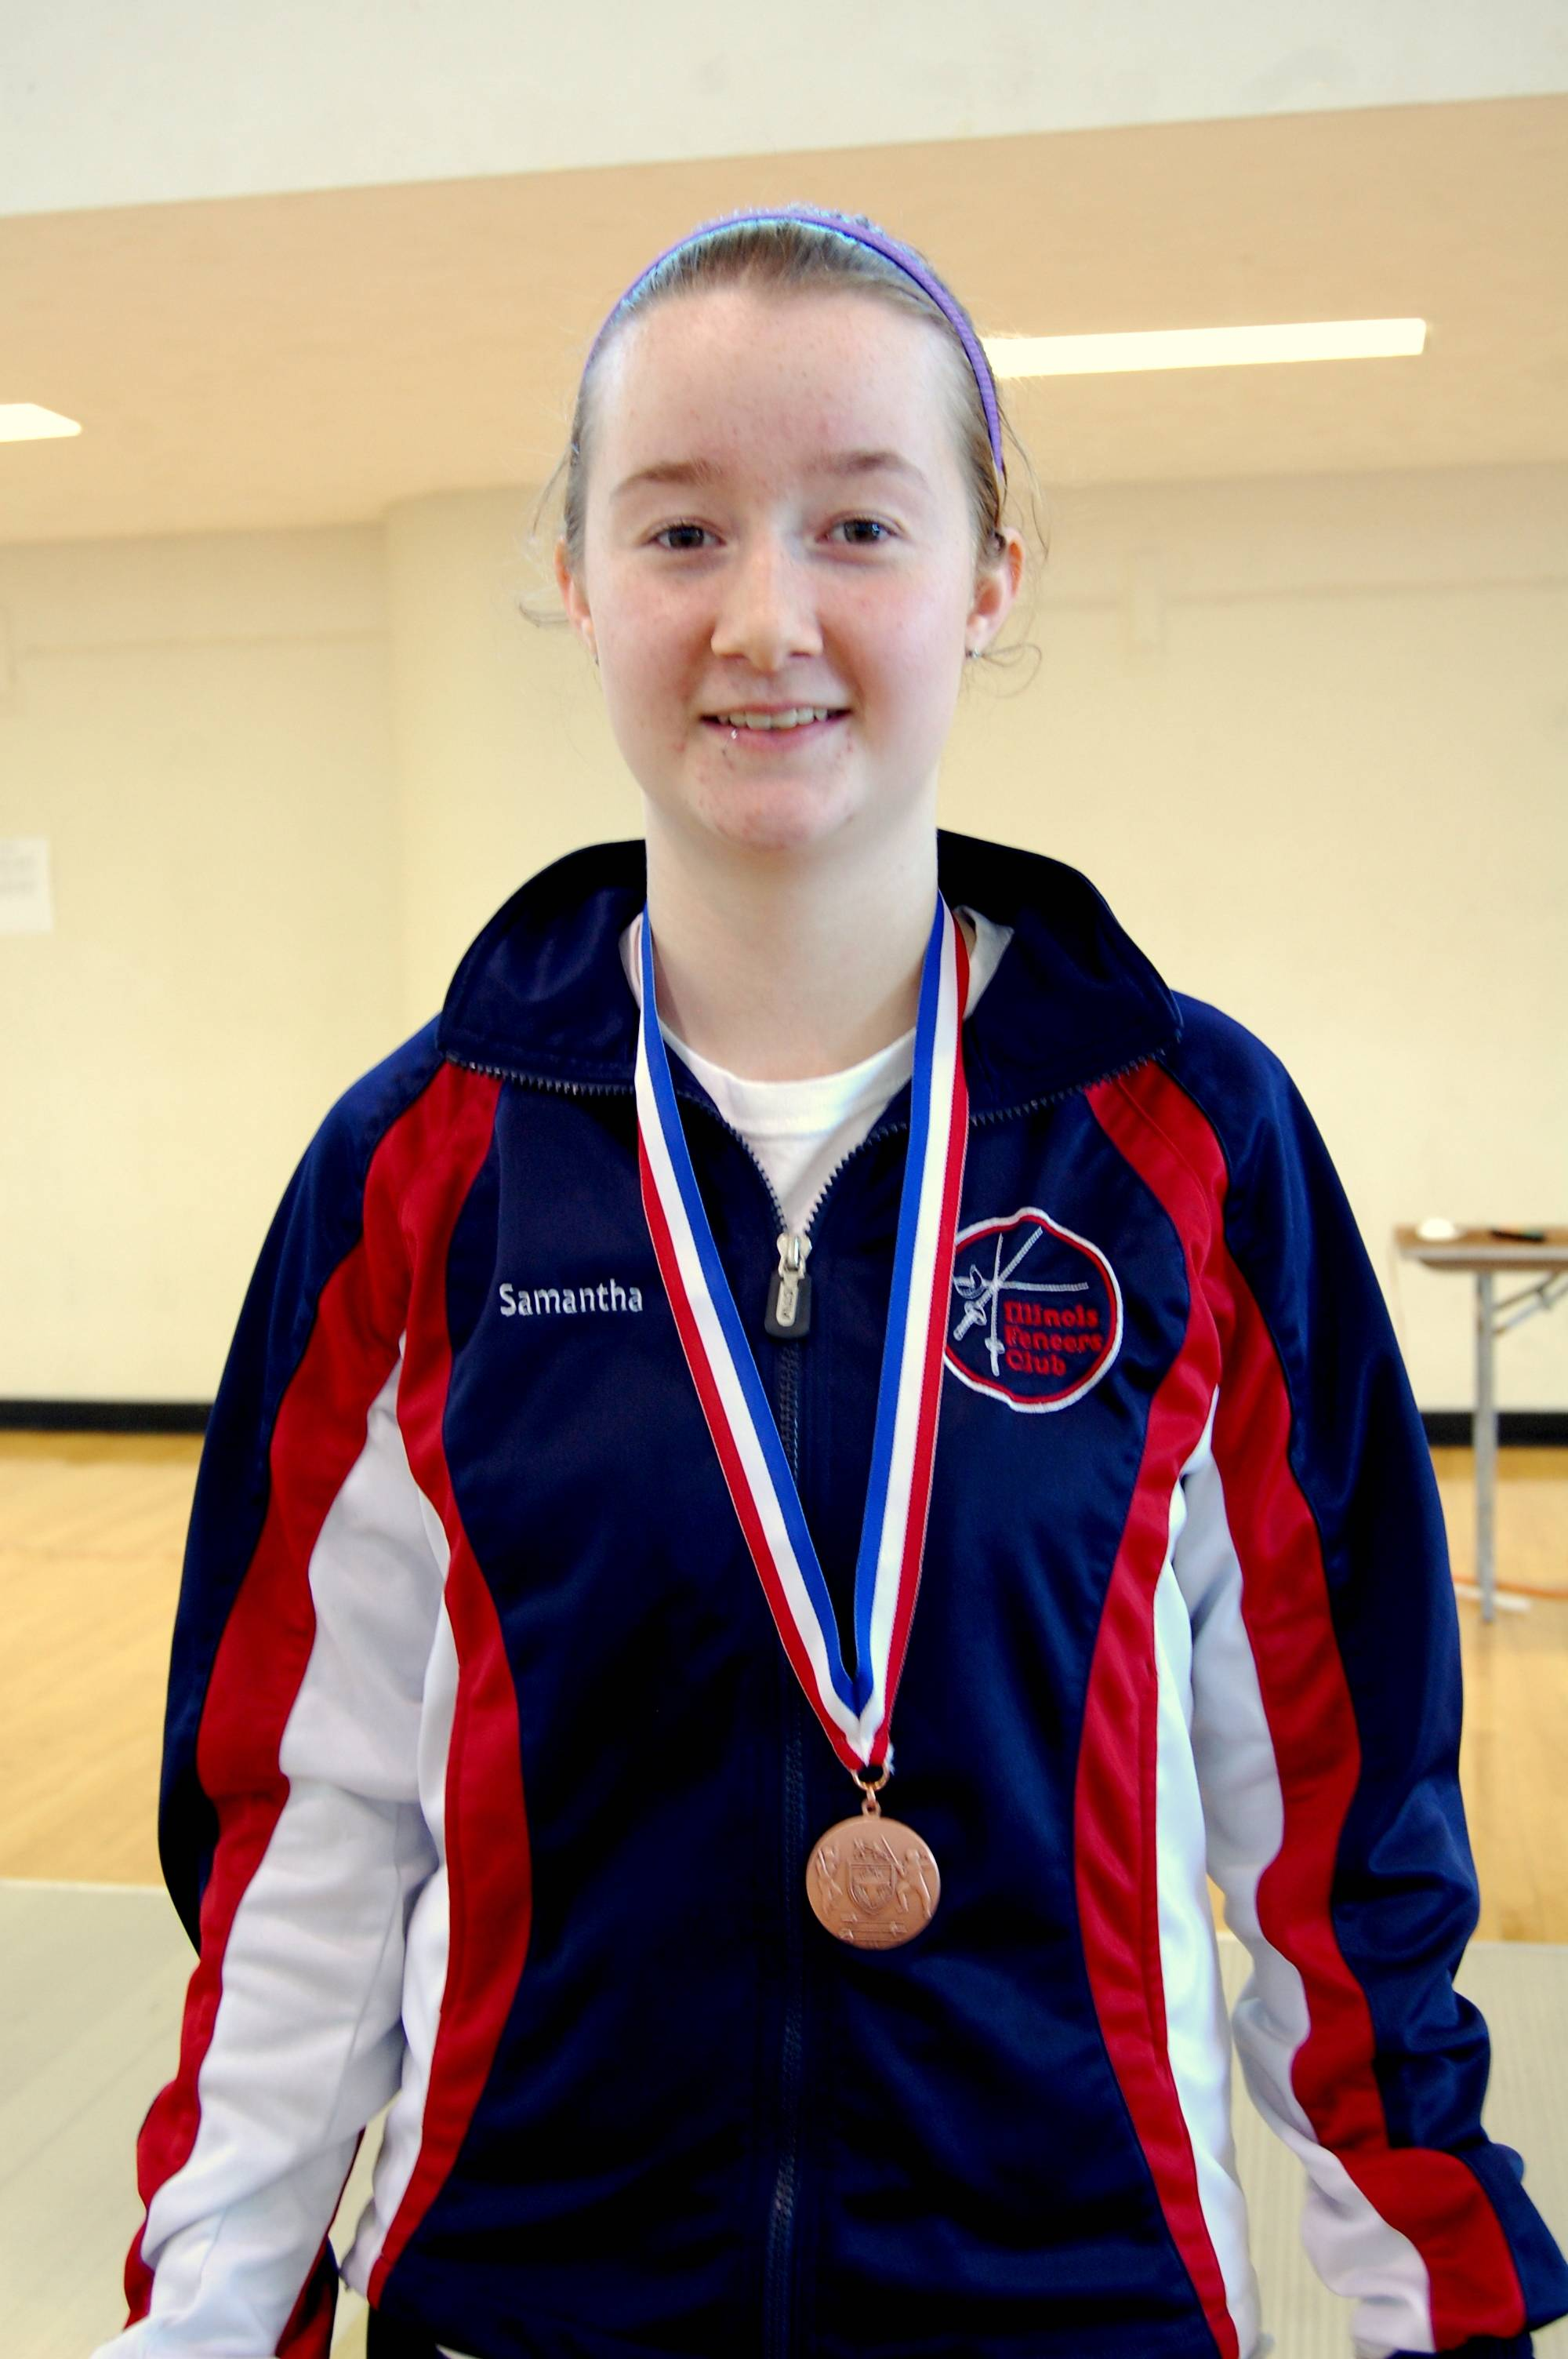 Samantha Doro placed 6th in Senior Women's Epee at the Burton Open fencing tournament held at Northwestern University